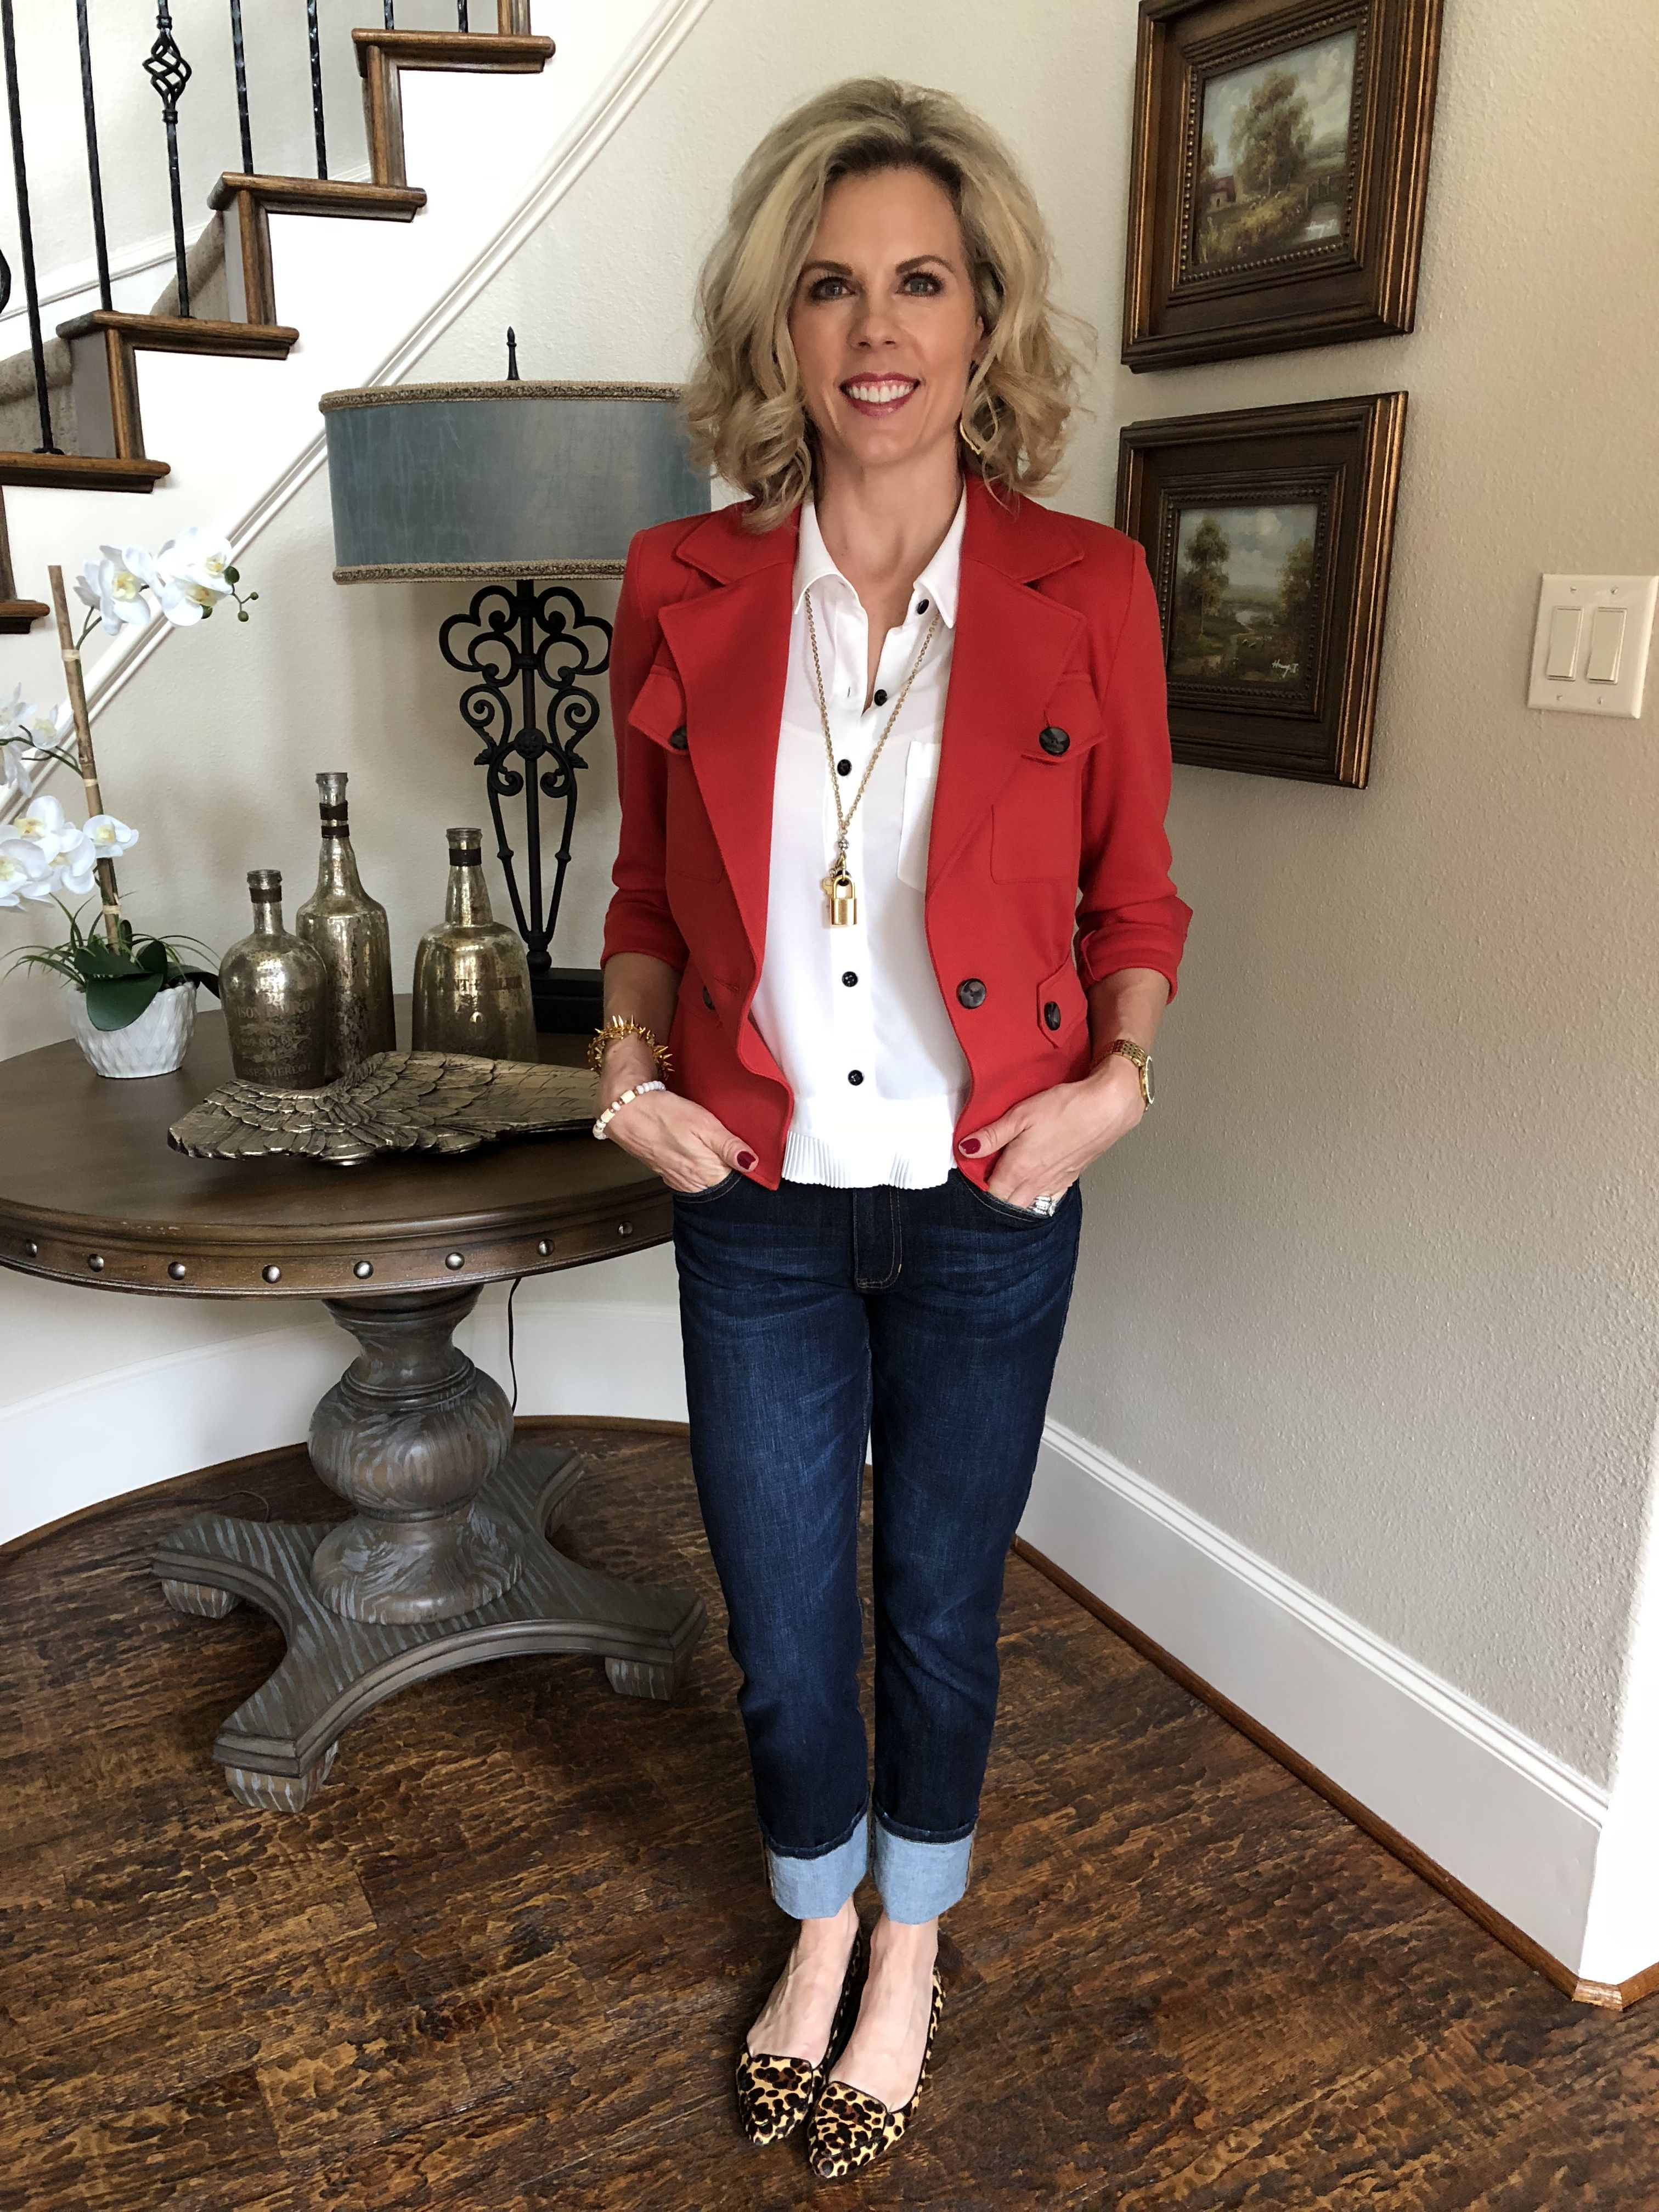 a45ce068c07bd0 The LRJ (Little Red Jacket) is the perfect Red! Love it with the Pleat  Blouse and High Straight jeans.